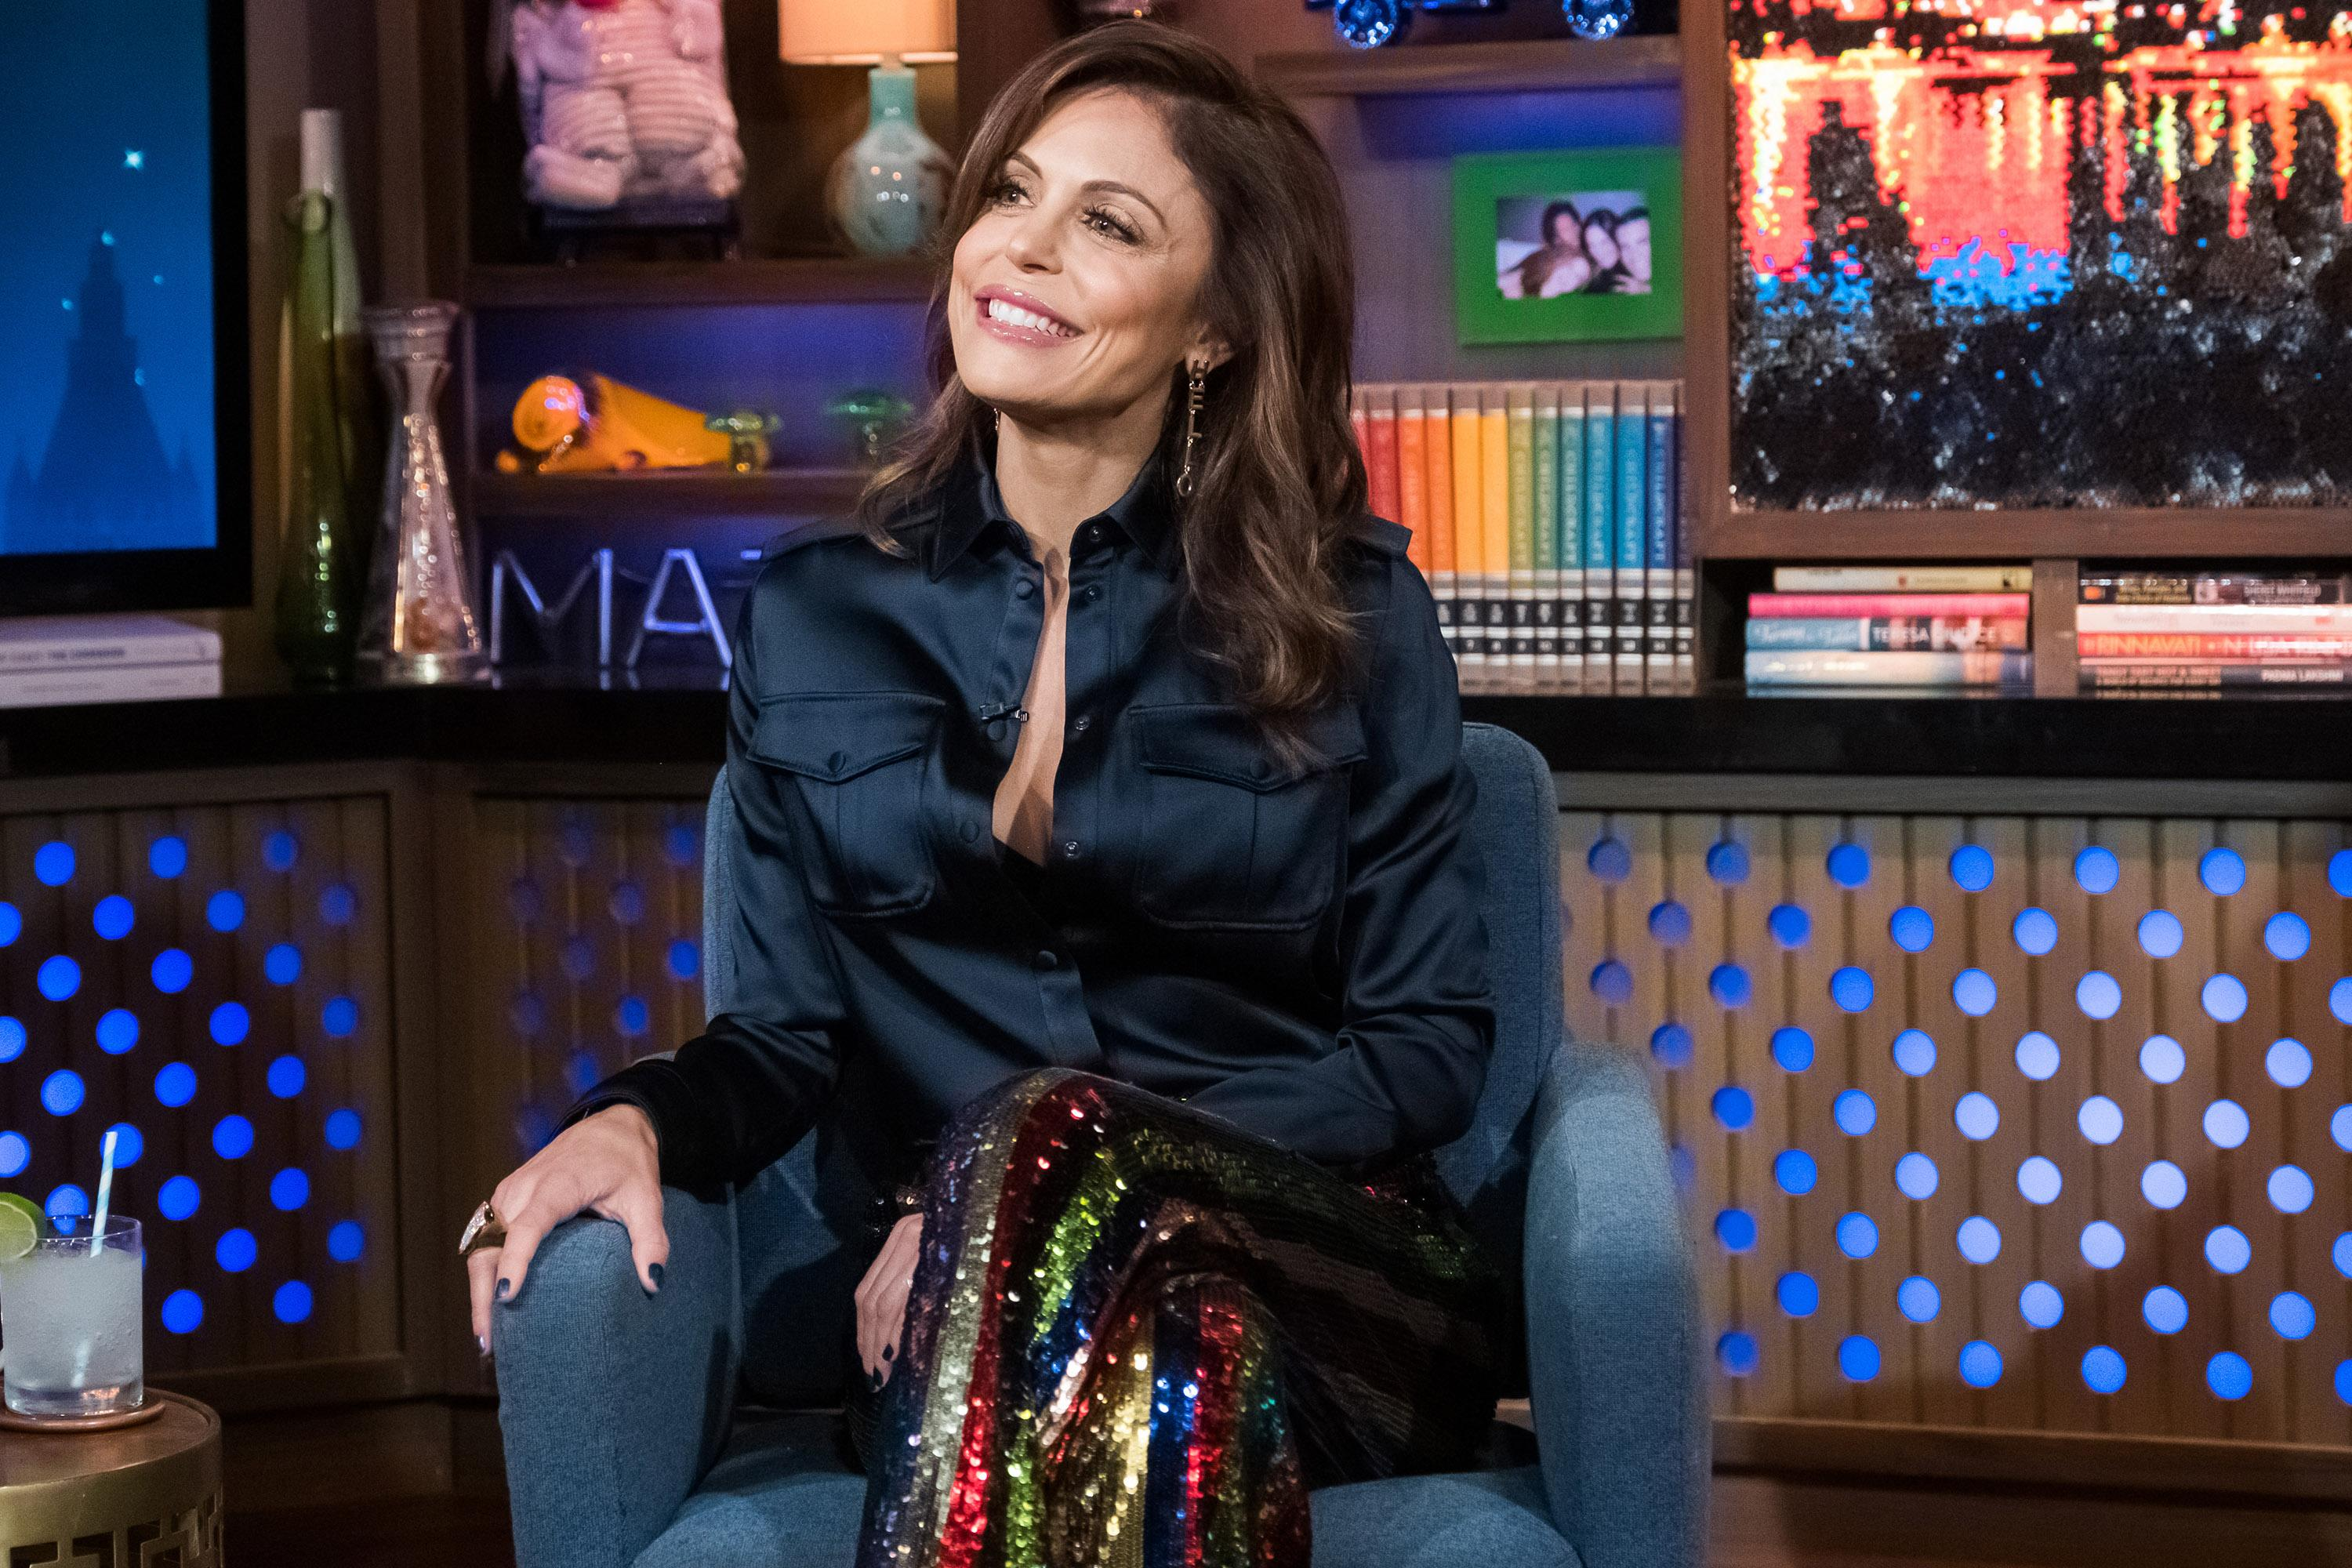 Bethenny Frankel says she's married after announcing 'Real Housewives' departure